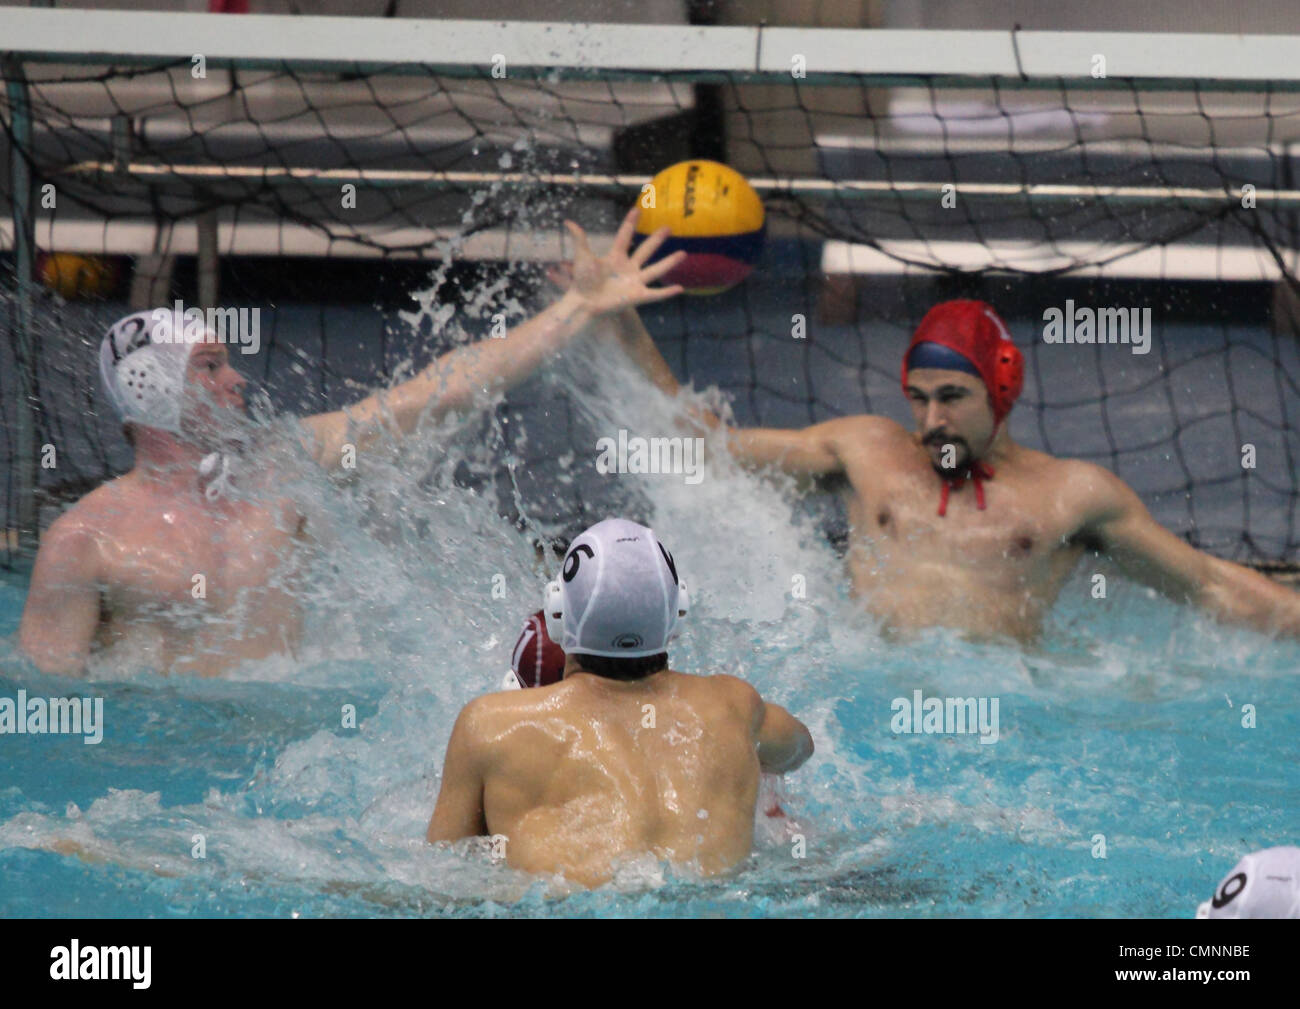 Water polo between Sheffield University and Sheffield Hallam University during the Varsity 2012 sports event. - Stock Image